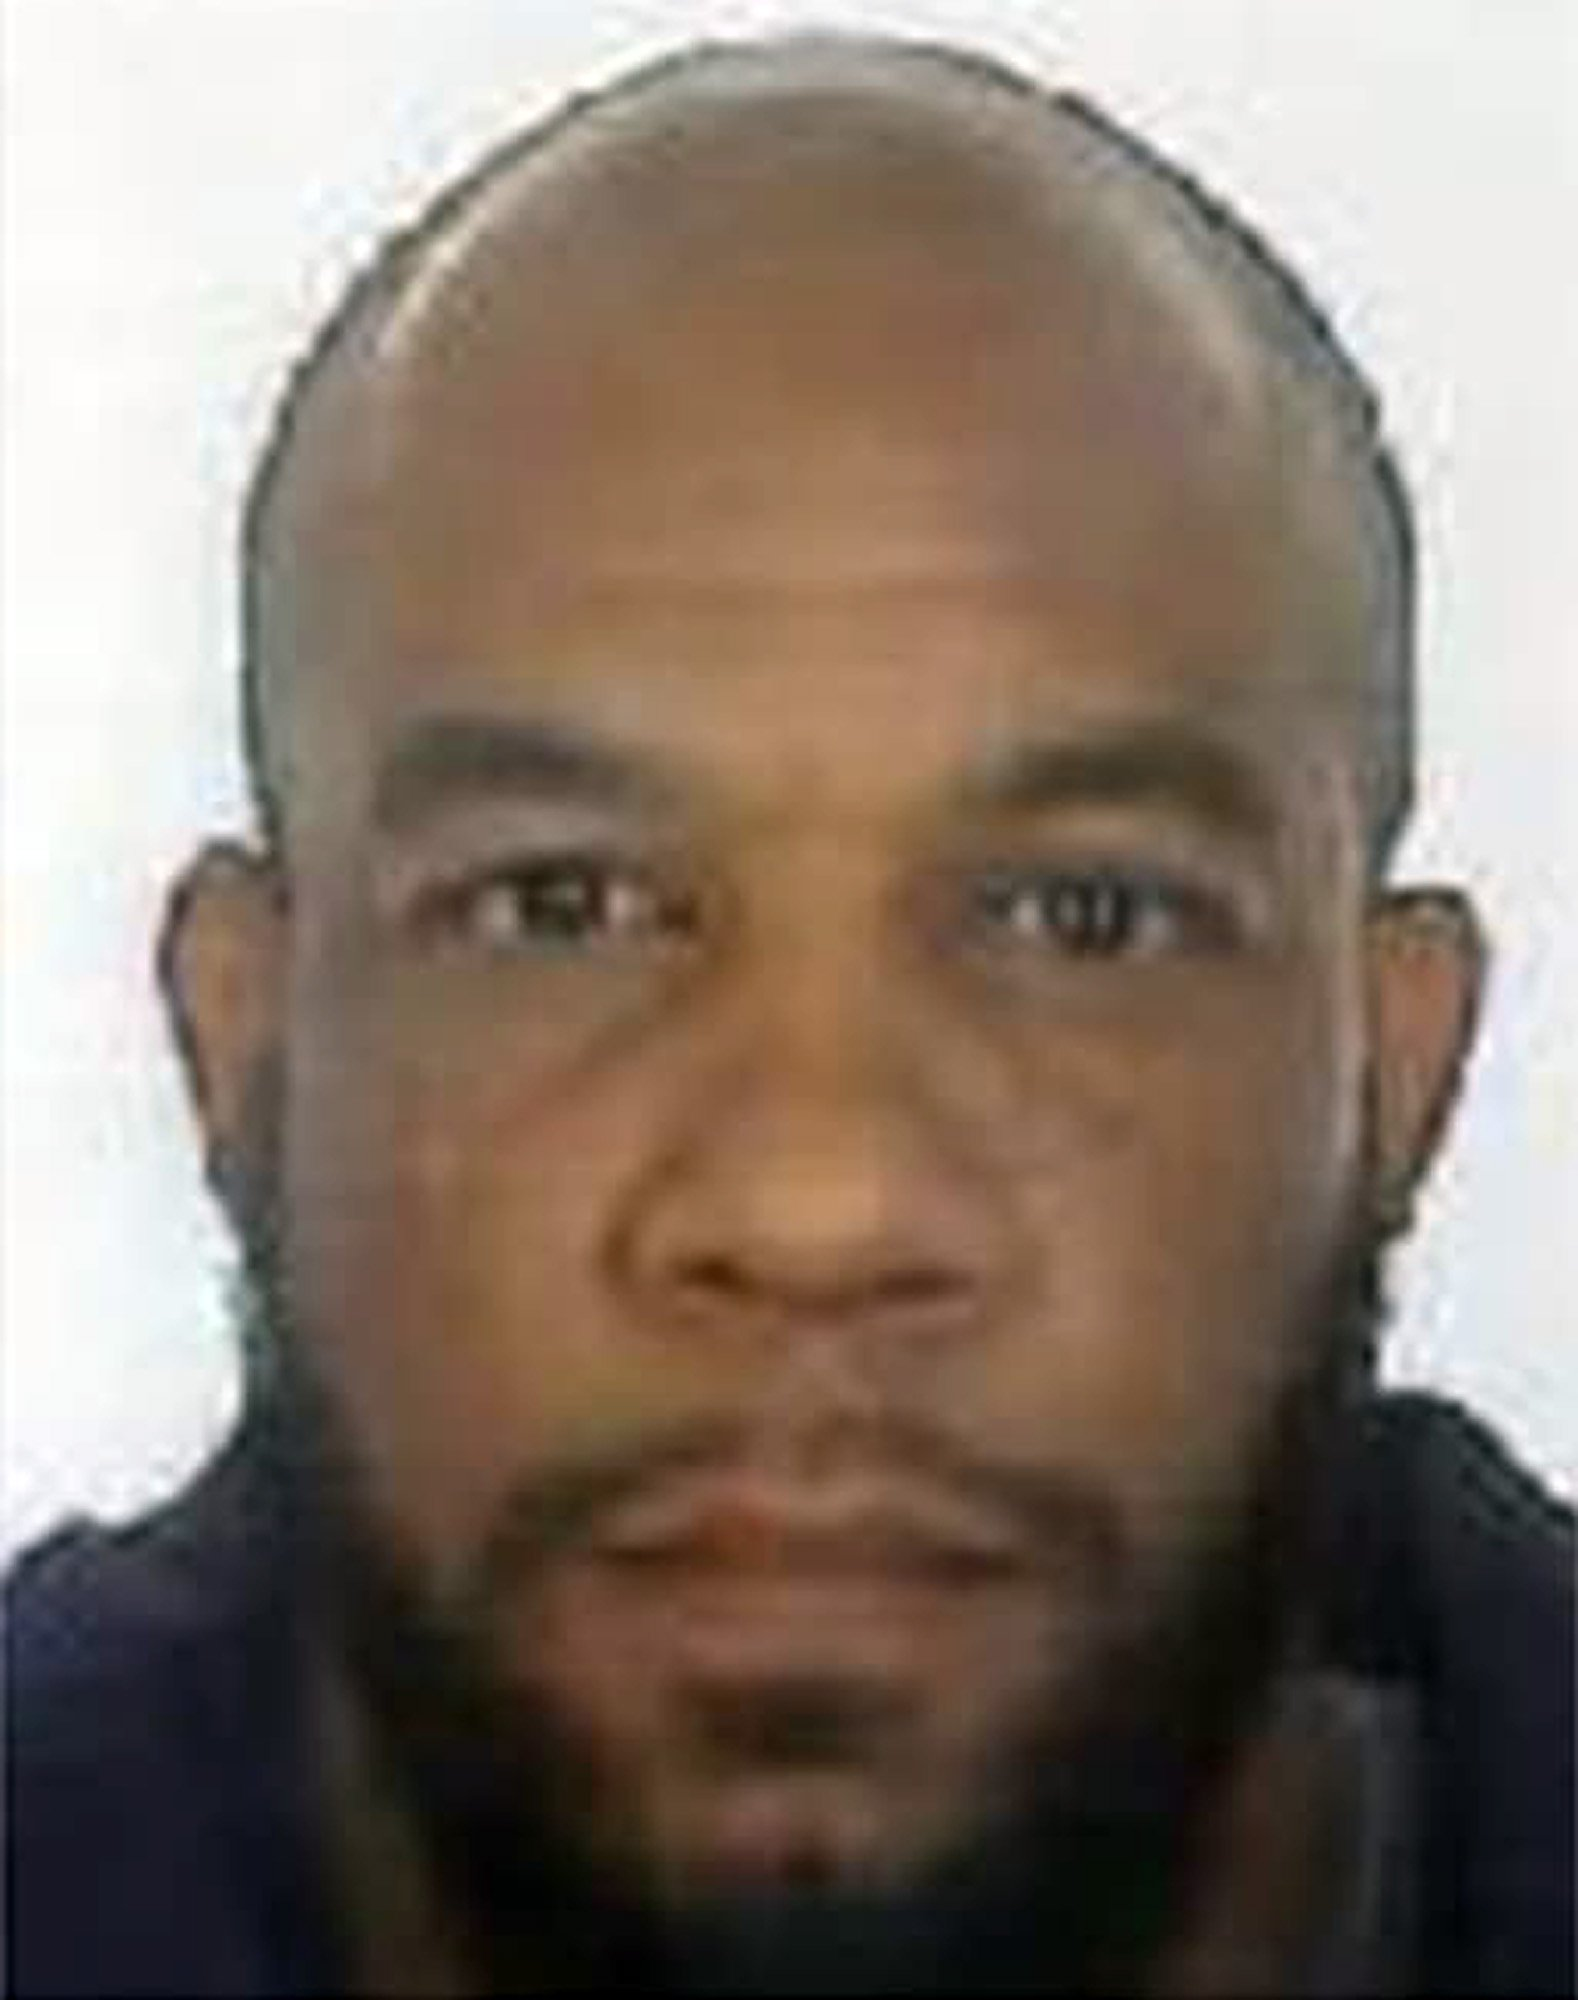 Undated handout photo issued by the Metropolitan Police of Khalid Masood. An inquest into the death of the Westminster Bridge terrorist is due to start at the Old Bailey, London. PRESS ASSOCIATION Photo. Issue date: Thursday October 4, 2018. See PA story INQUEST Westminster. Photo credit should read: Metropolitan Police/PA Wire NOTE TO EDITORS: This handout photo may only be used in for editorial reporting purposes for the contemporaneous illustration of events, things or the people in the image or facts mentioned in the caption. Reuse of the picture may require further permission from the copyright holder.